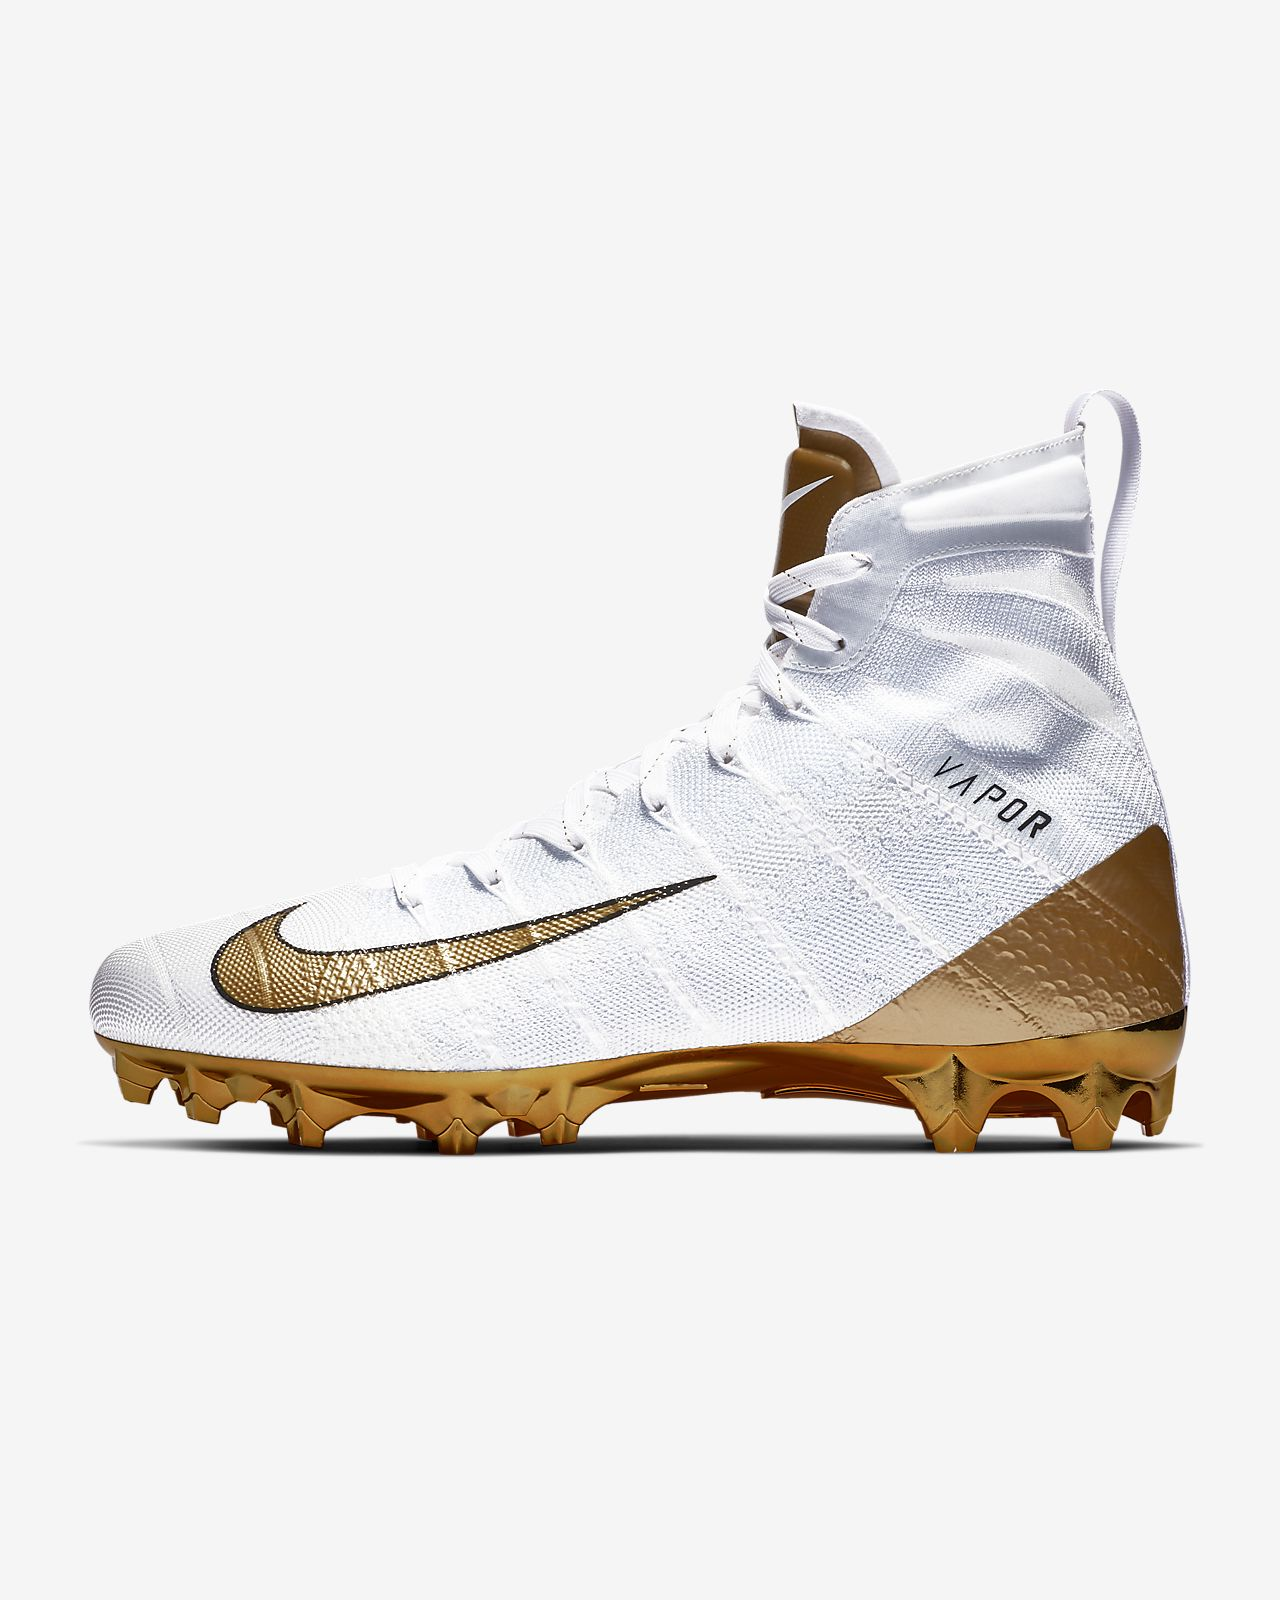 5538bf3fd57906 Nike Vapor Untouchable 3 Elite Football Cleat. Nike.com